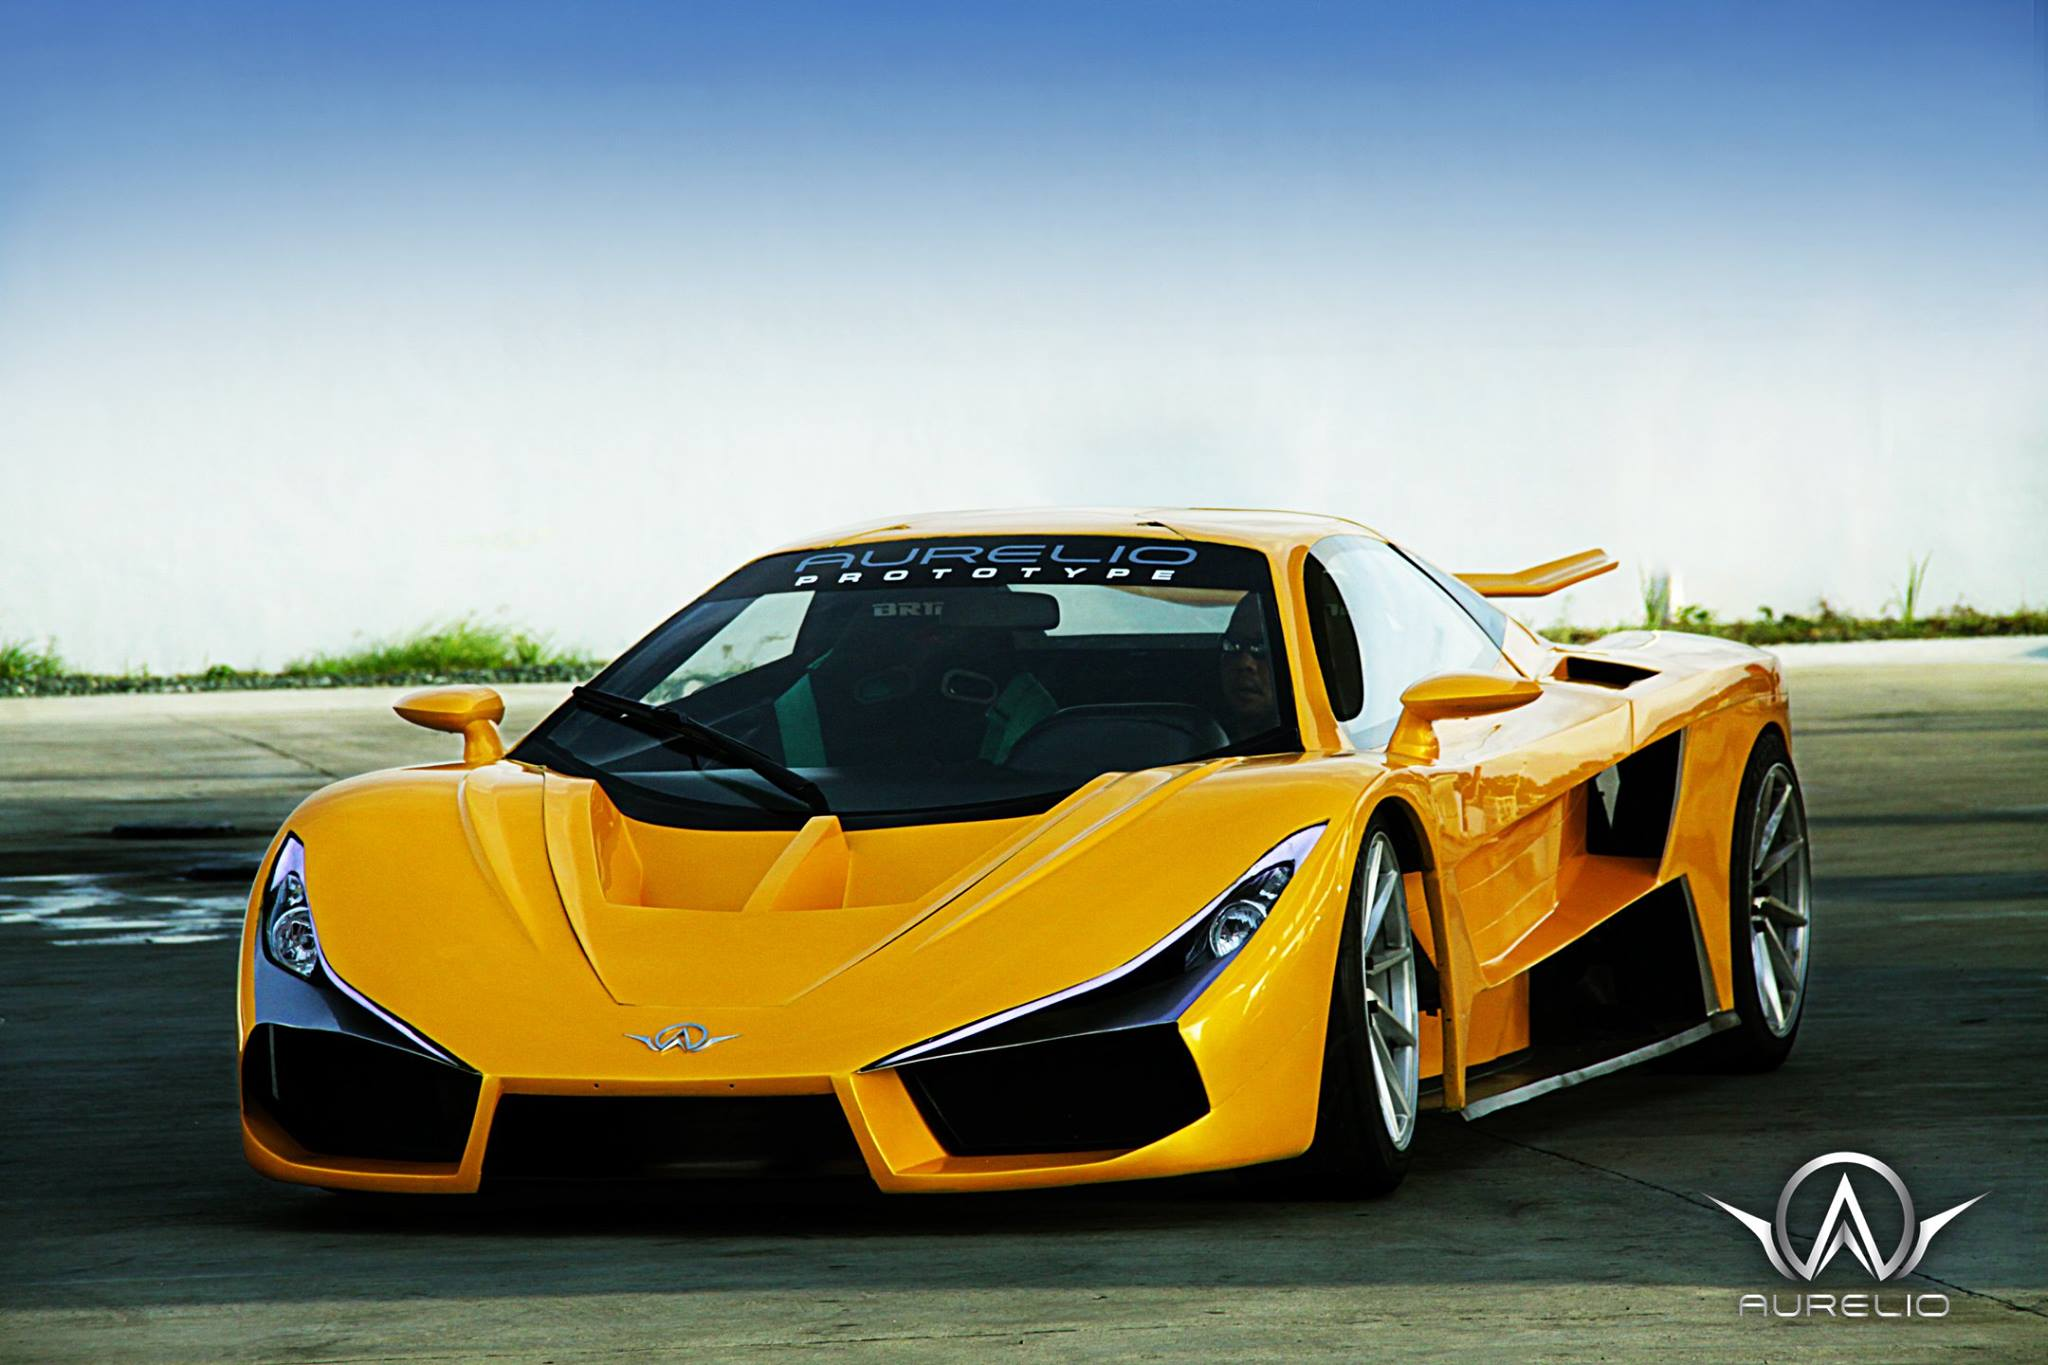 factor-aurelio-automobile-first-filipino-supercar-philippines-front